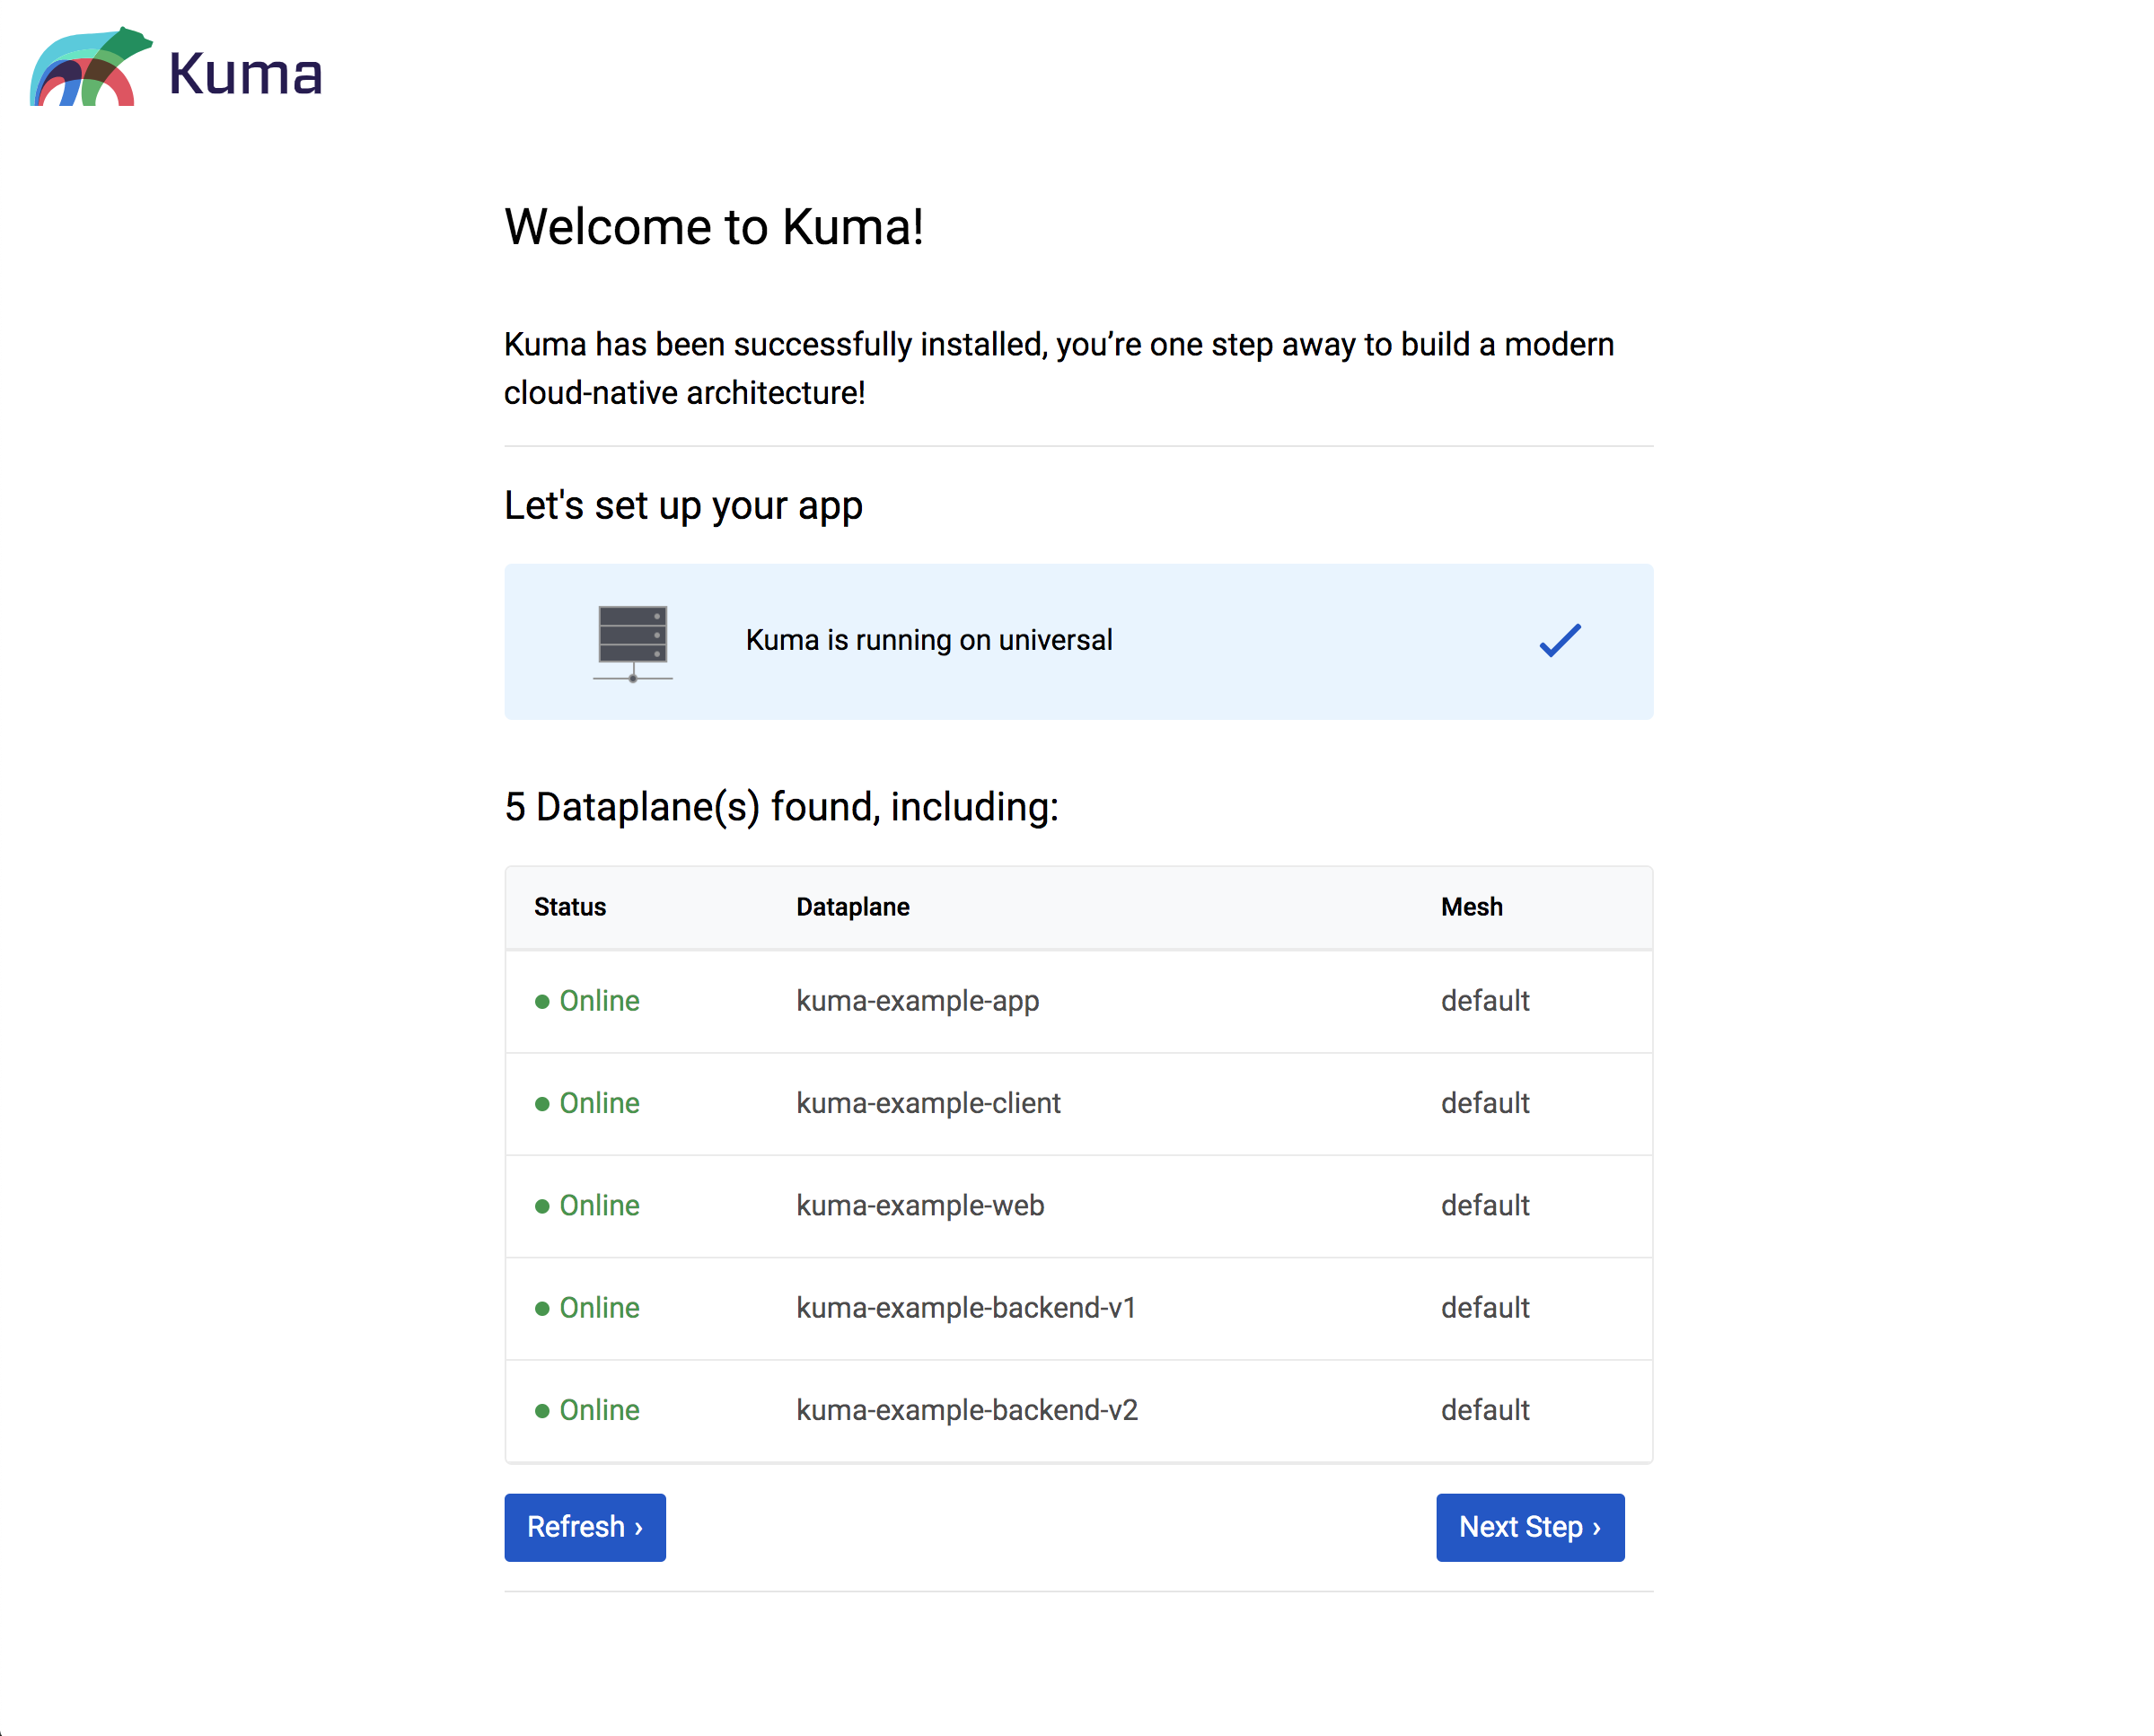 A screenshot of the first step of the Kuma GUI Wizard